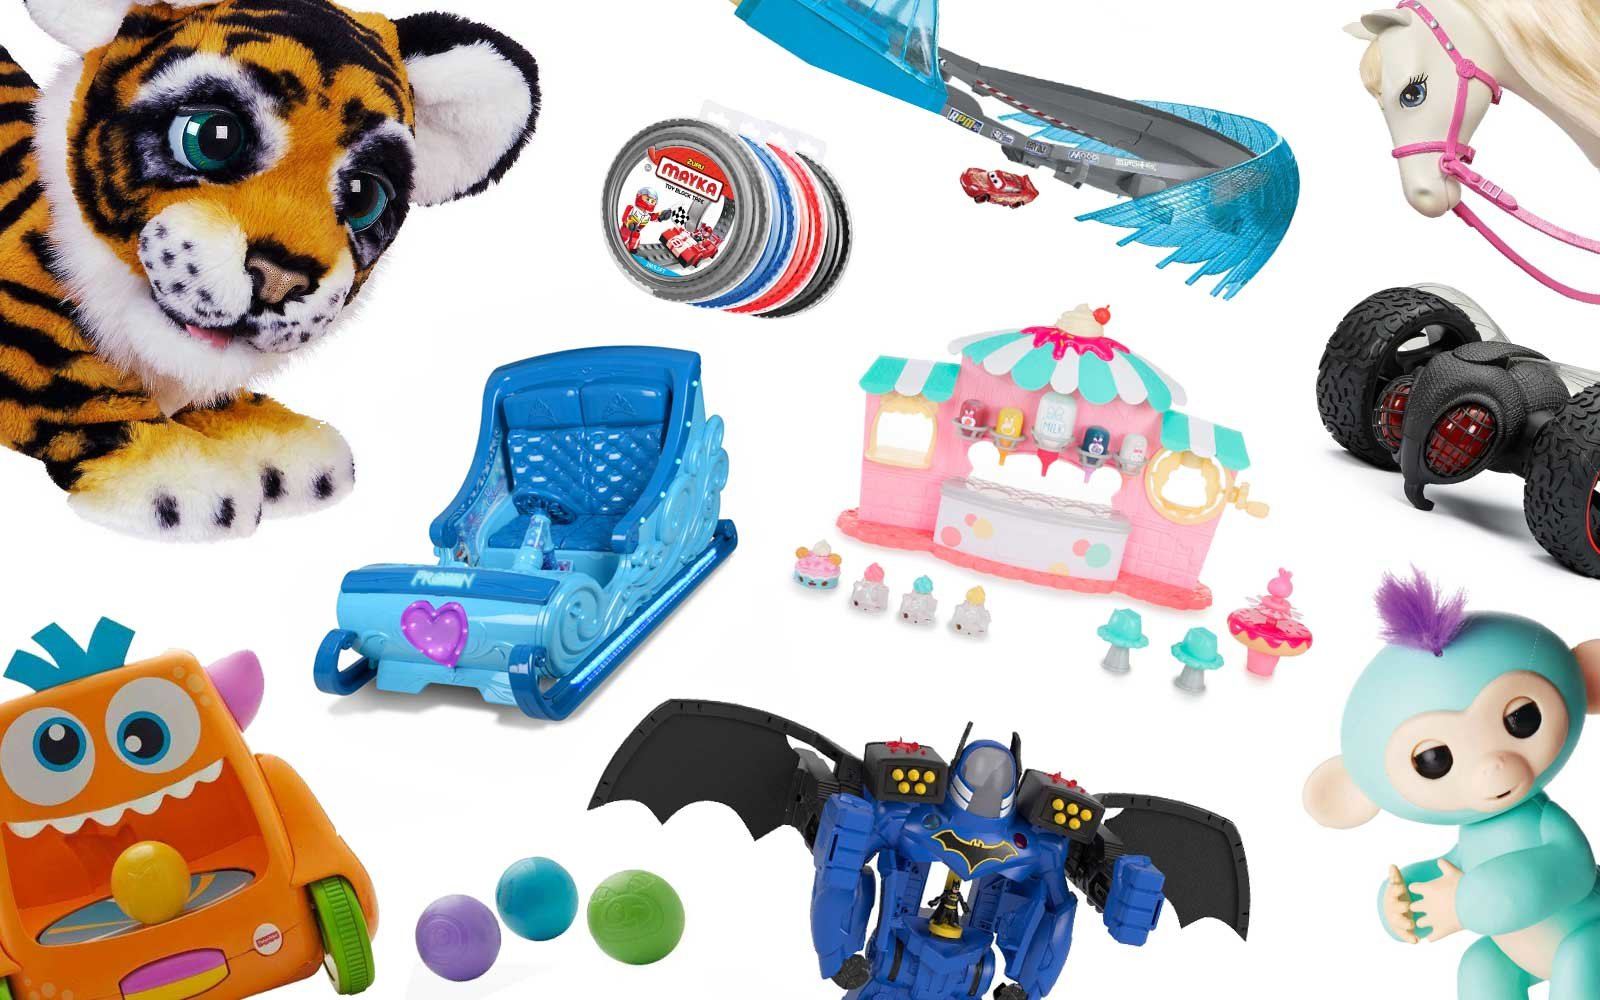 Walmart's Top 25 Toys for Christmas